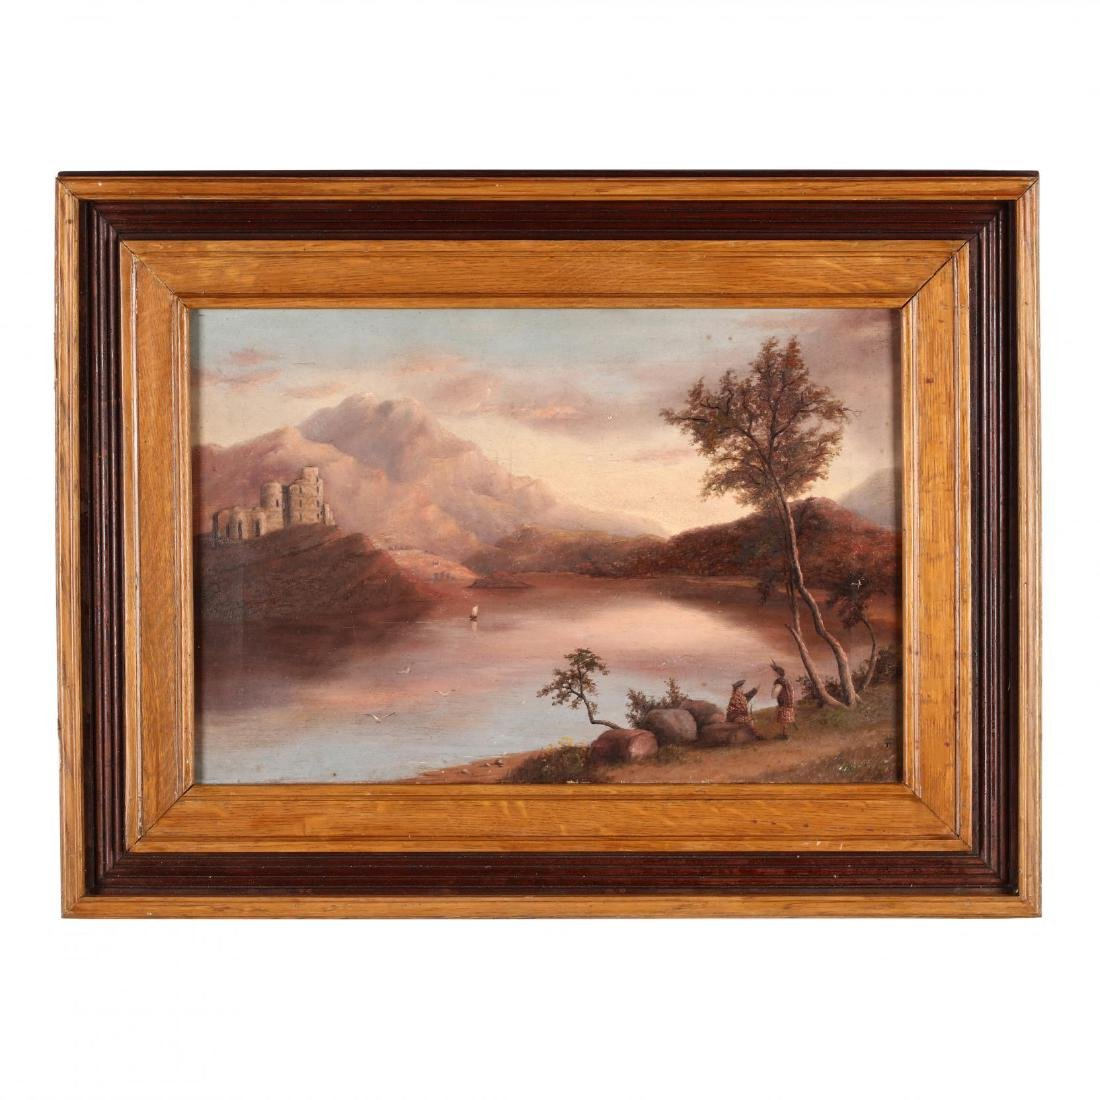 An Antique Scottish Painting of a Loch with Highlanders